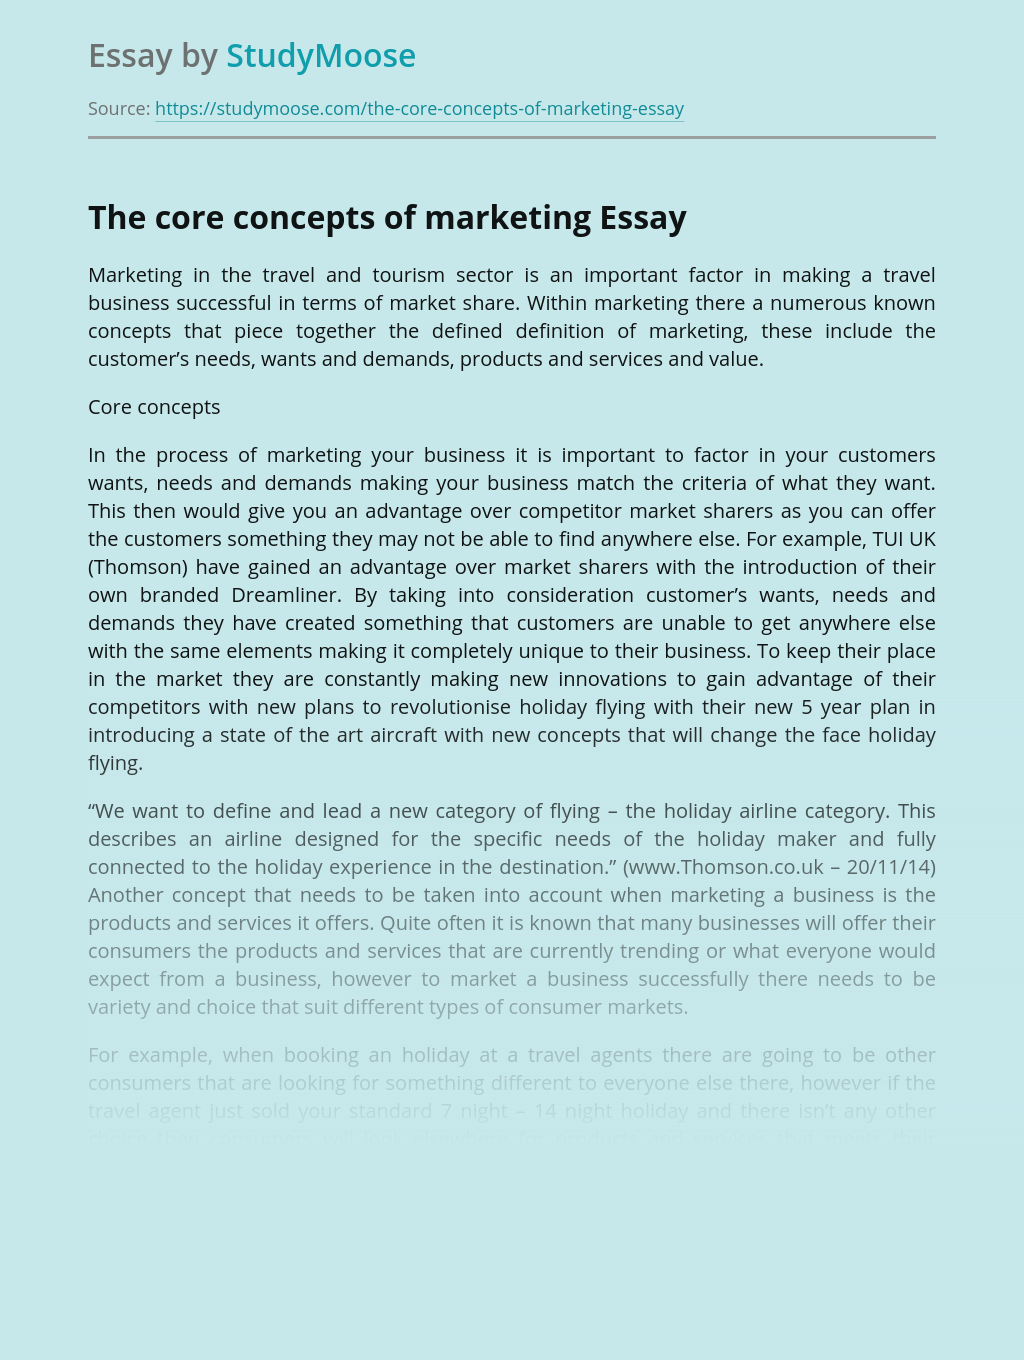 The core concepts of marketing